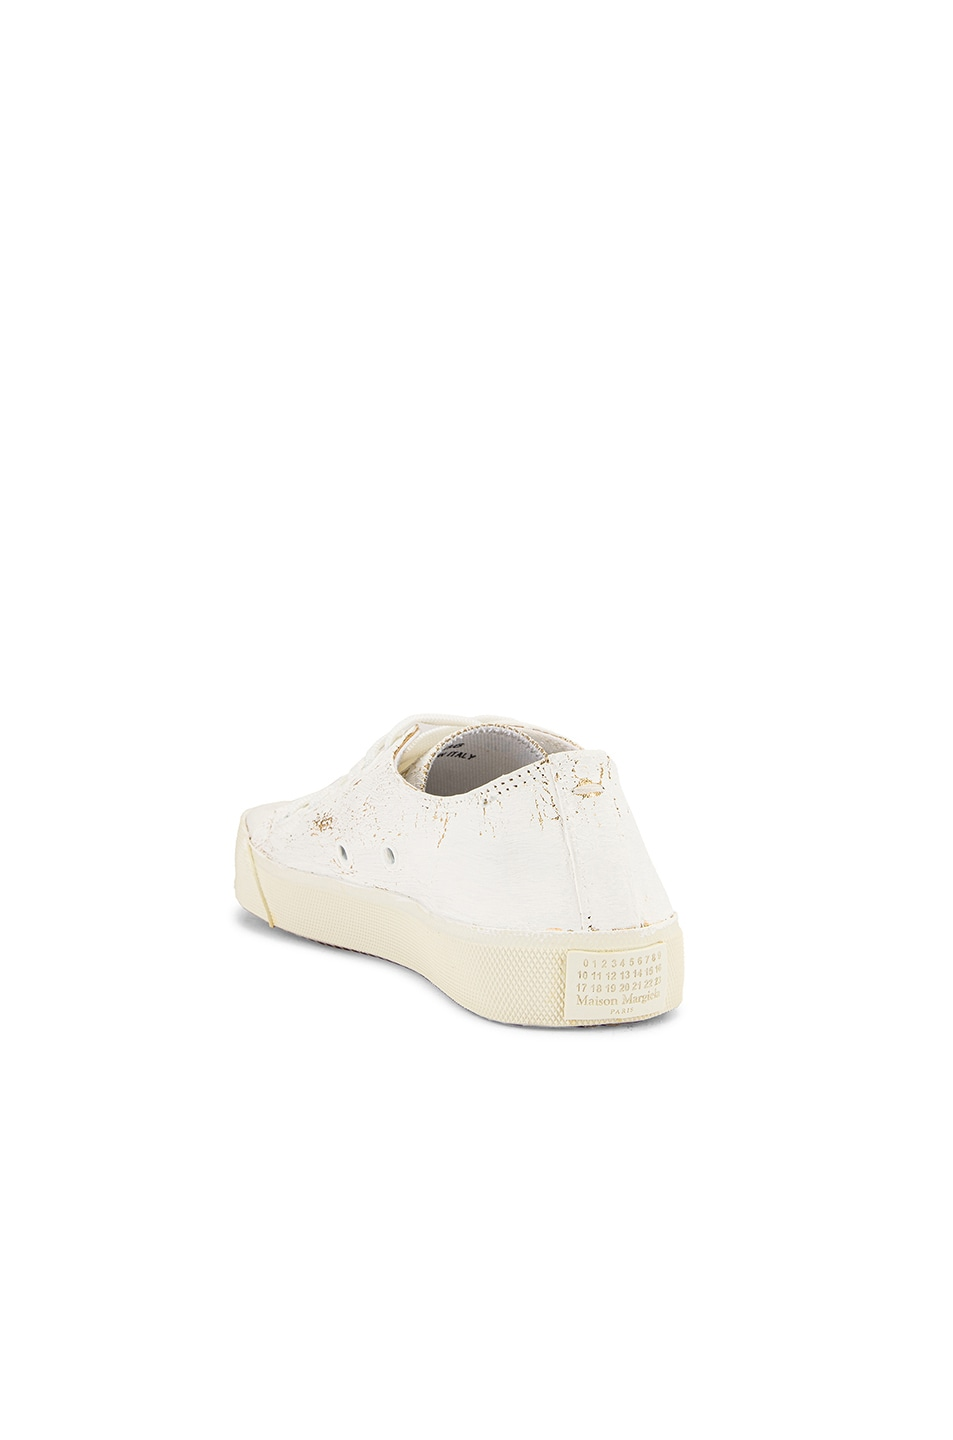 Image 4 of Maison Margiela Low Top Tabi Sneakers in White & Gold